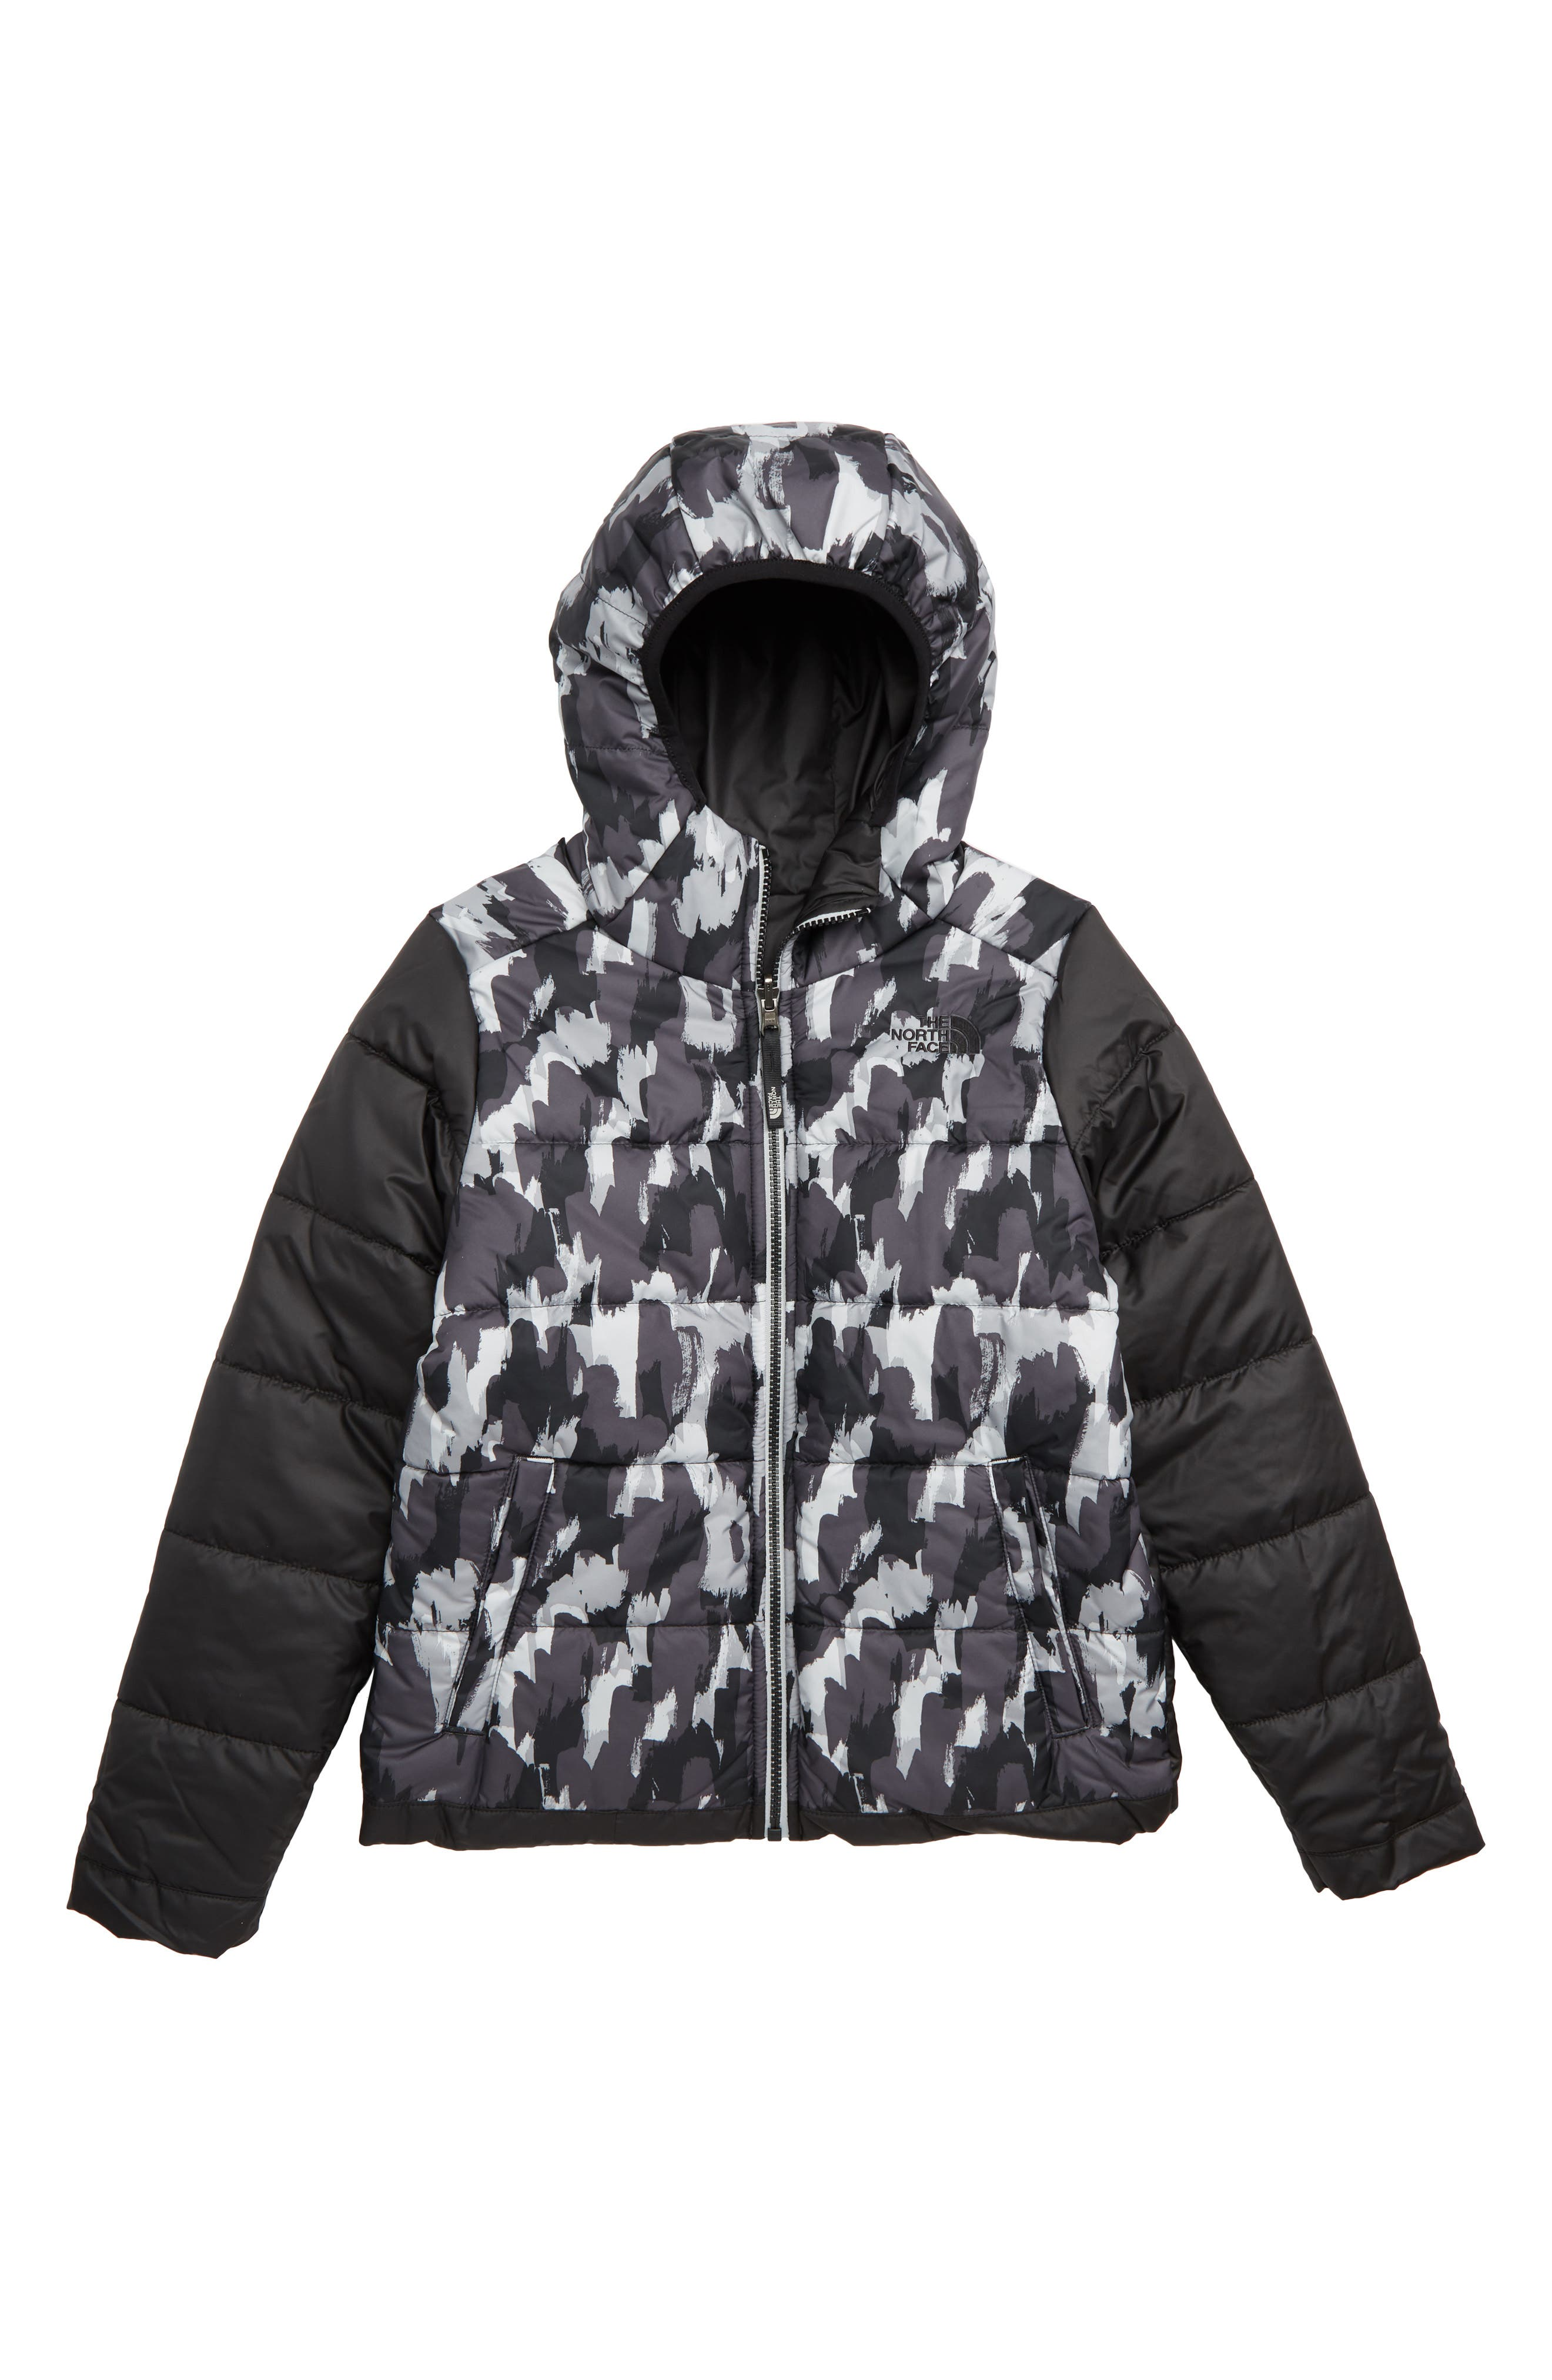 THE NORTH FACE, Perrito Reversible Water-Repellent Hooded Jacket, Alternate thumbnail 2, color, 001